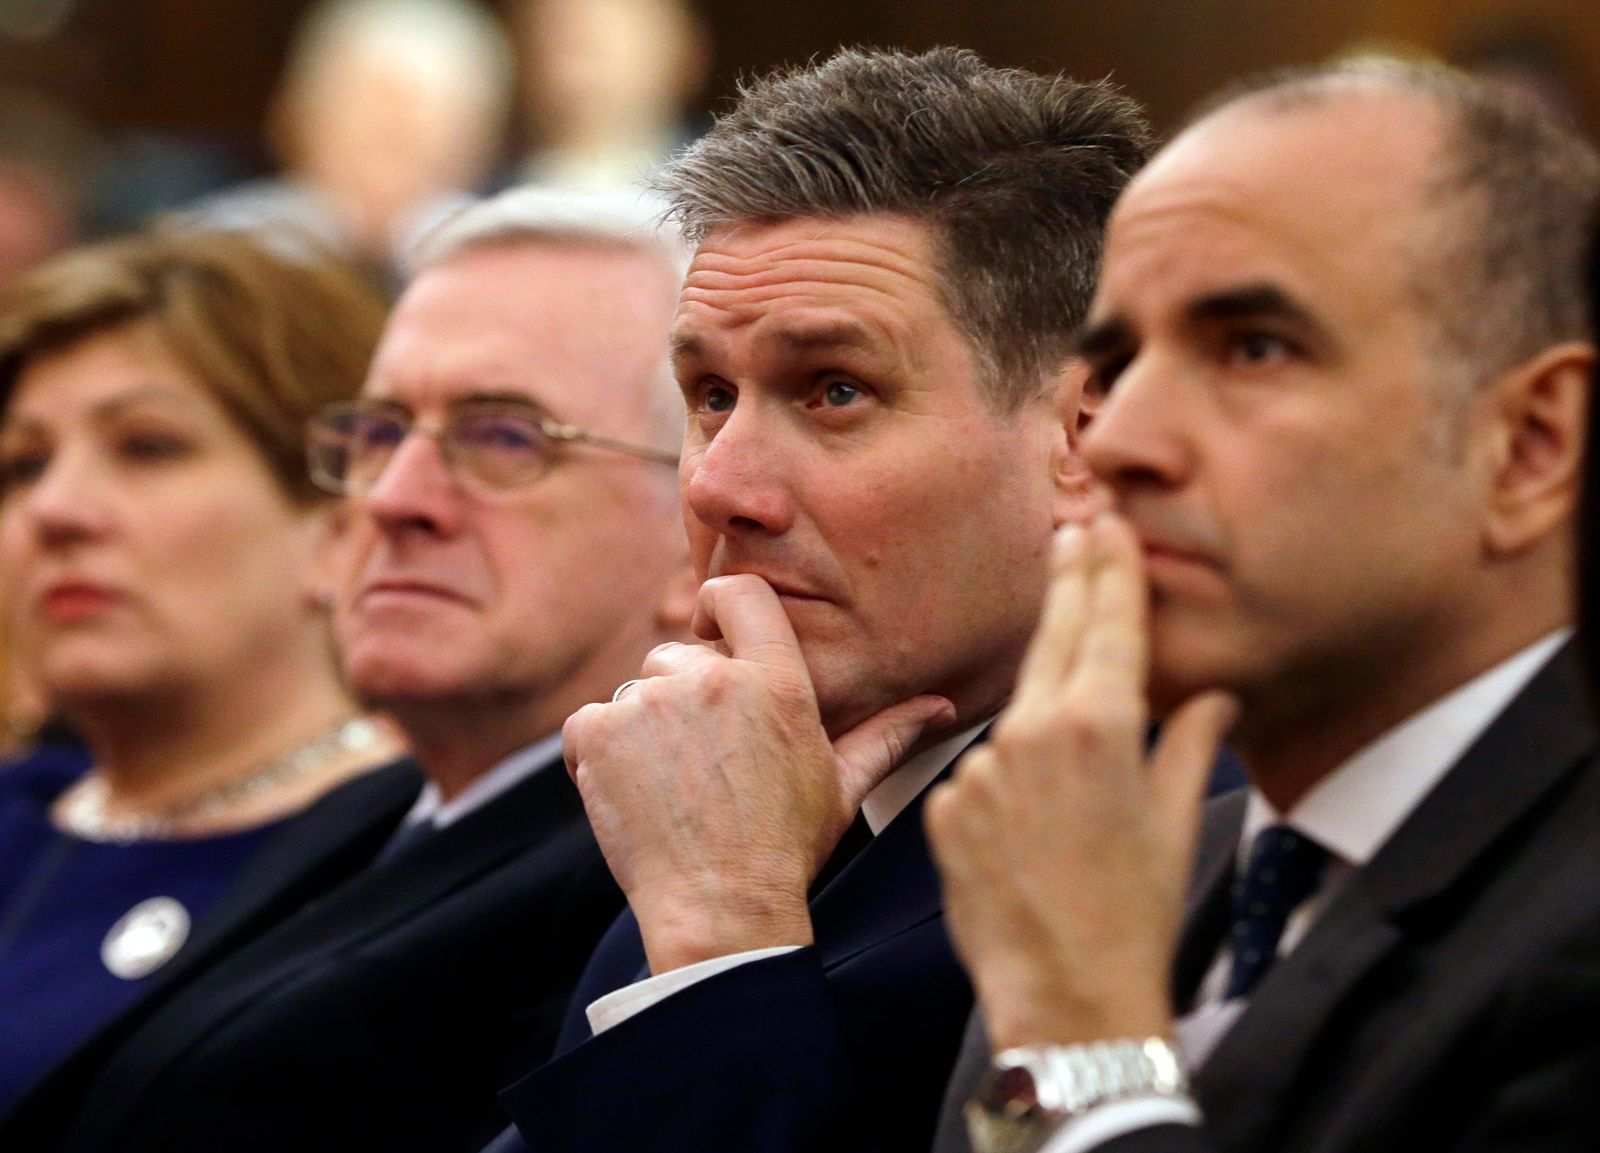 FILE - In this London, Friday, Feb. 24, 2017 file photo, Keir Starmer, second right, of the Labour party listens to Leader of the opposition Labour Party Jeremy Corbyn's speech laying out the plan for the party following the Brexit vote in June 2016. (AP Photo/Alastair Grant, File)